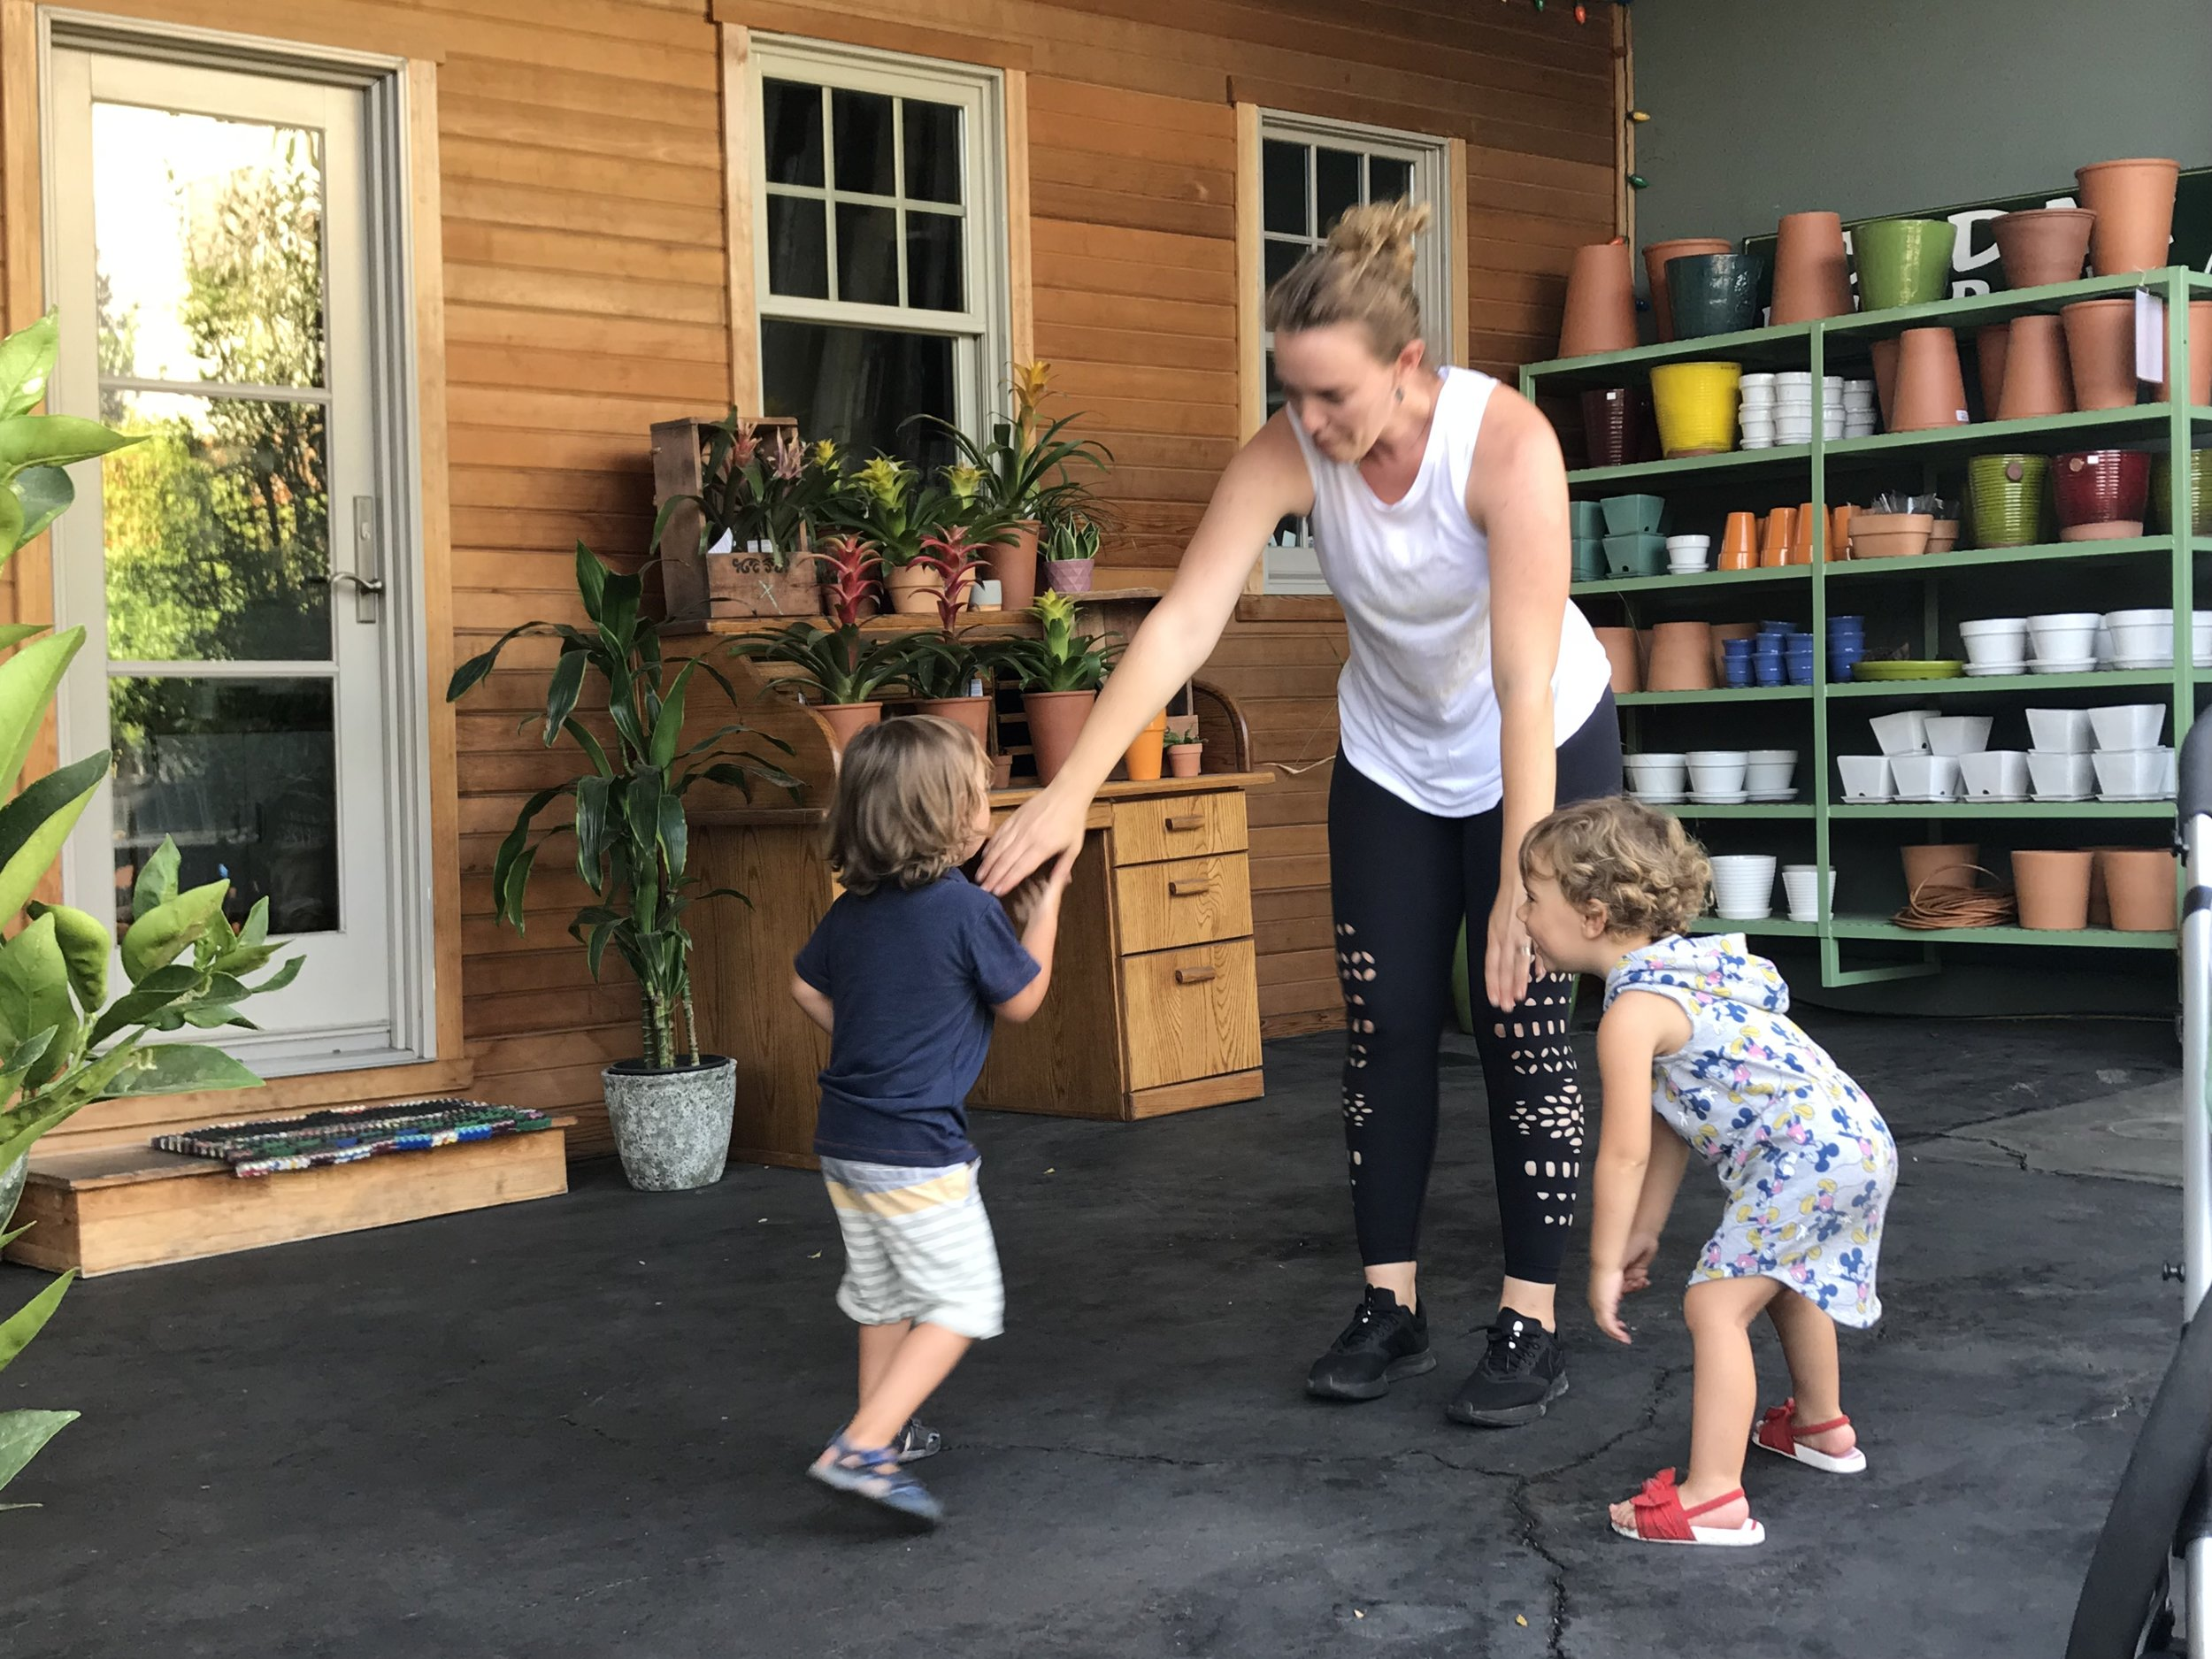 Yoga For Gardeners - Maya Siklai teaches yoga for all types of gardeners, young and old! Classes scattered throughout the summer.